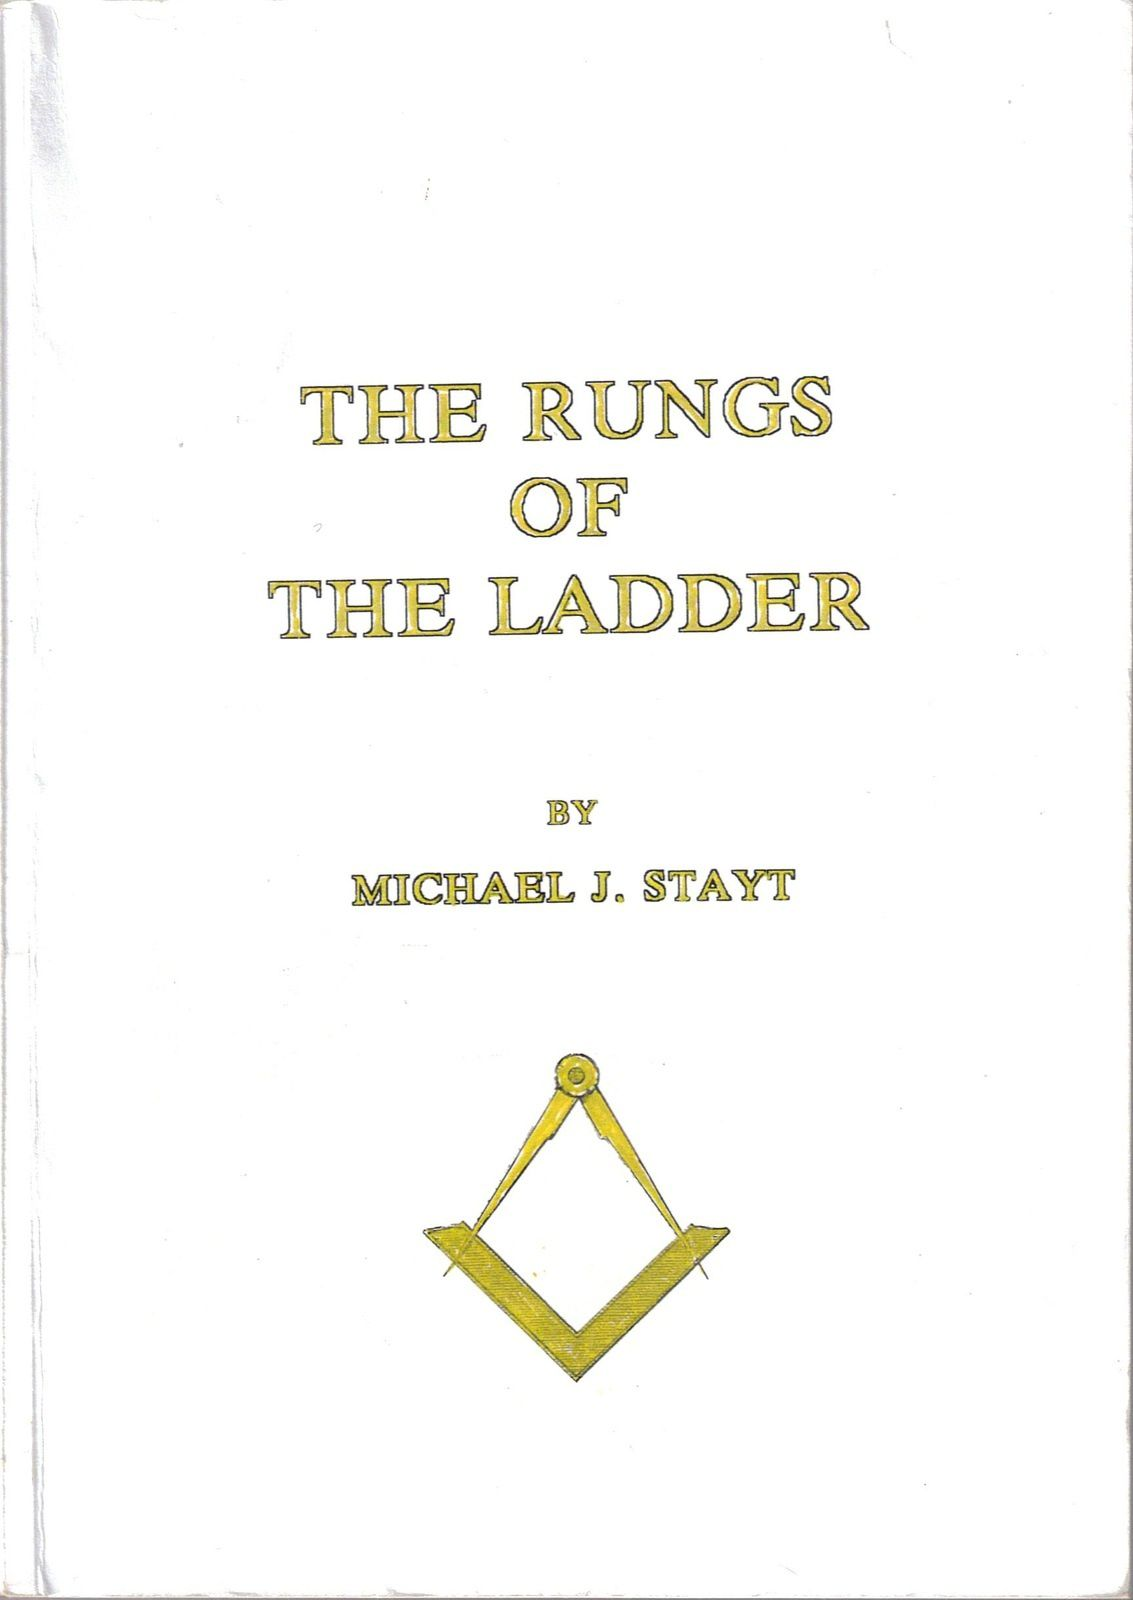 The rungs of the Ladder by Michael J. Stayt